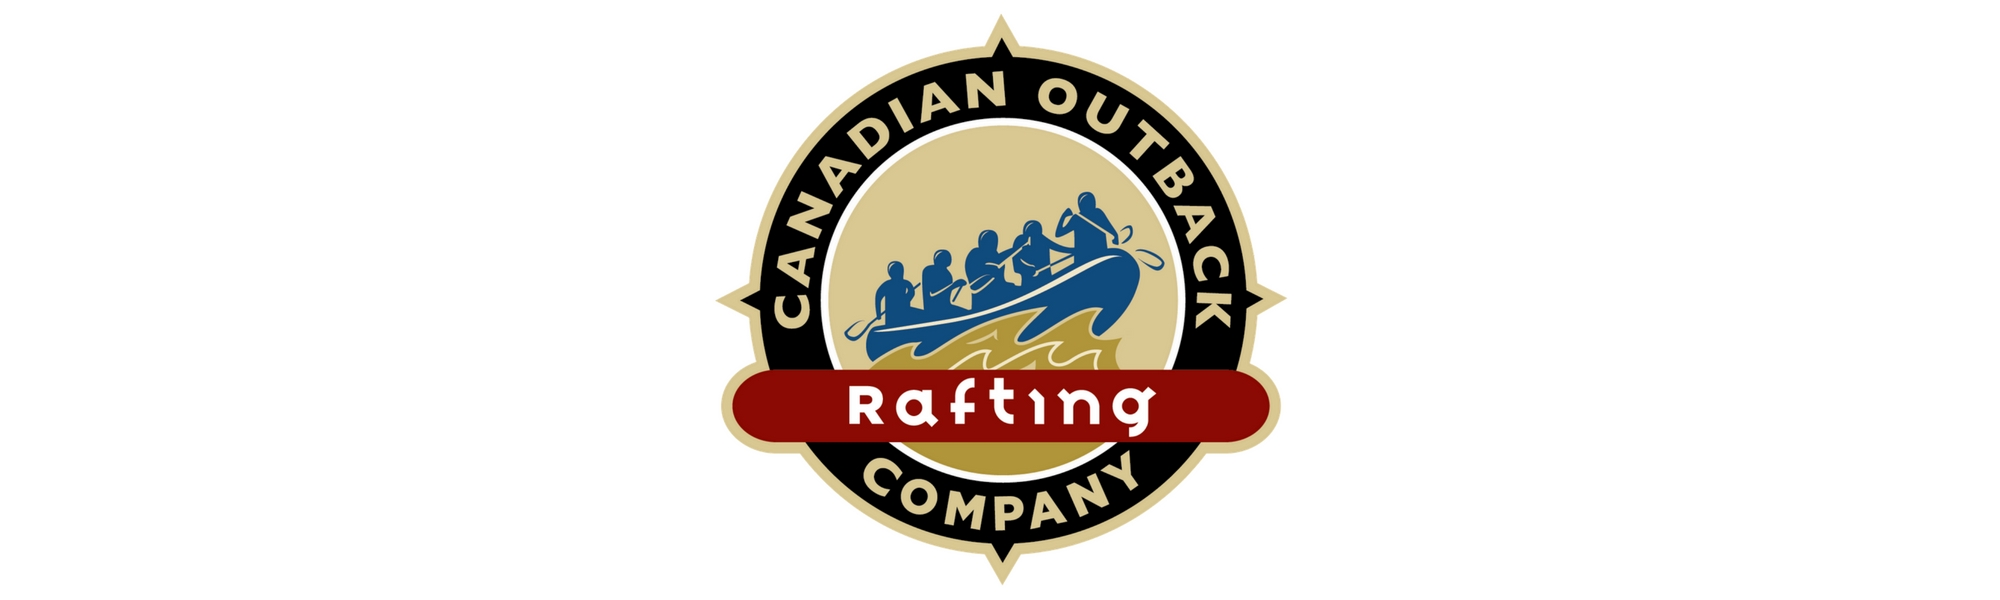 Canadian Outback rafting is a partner